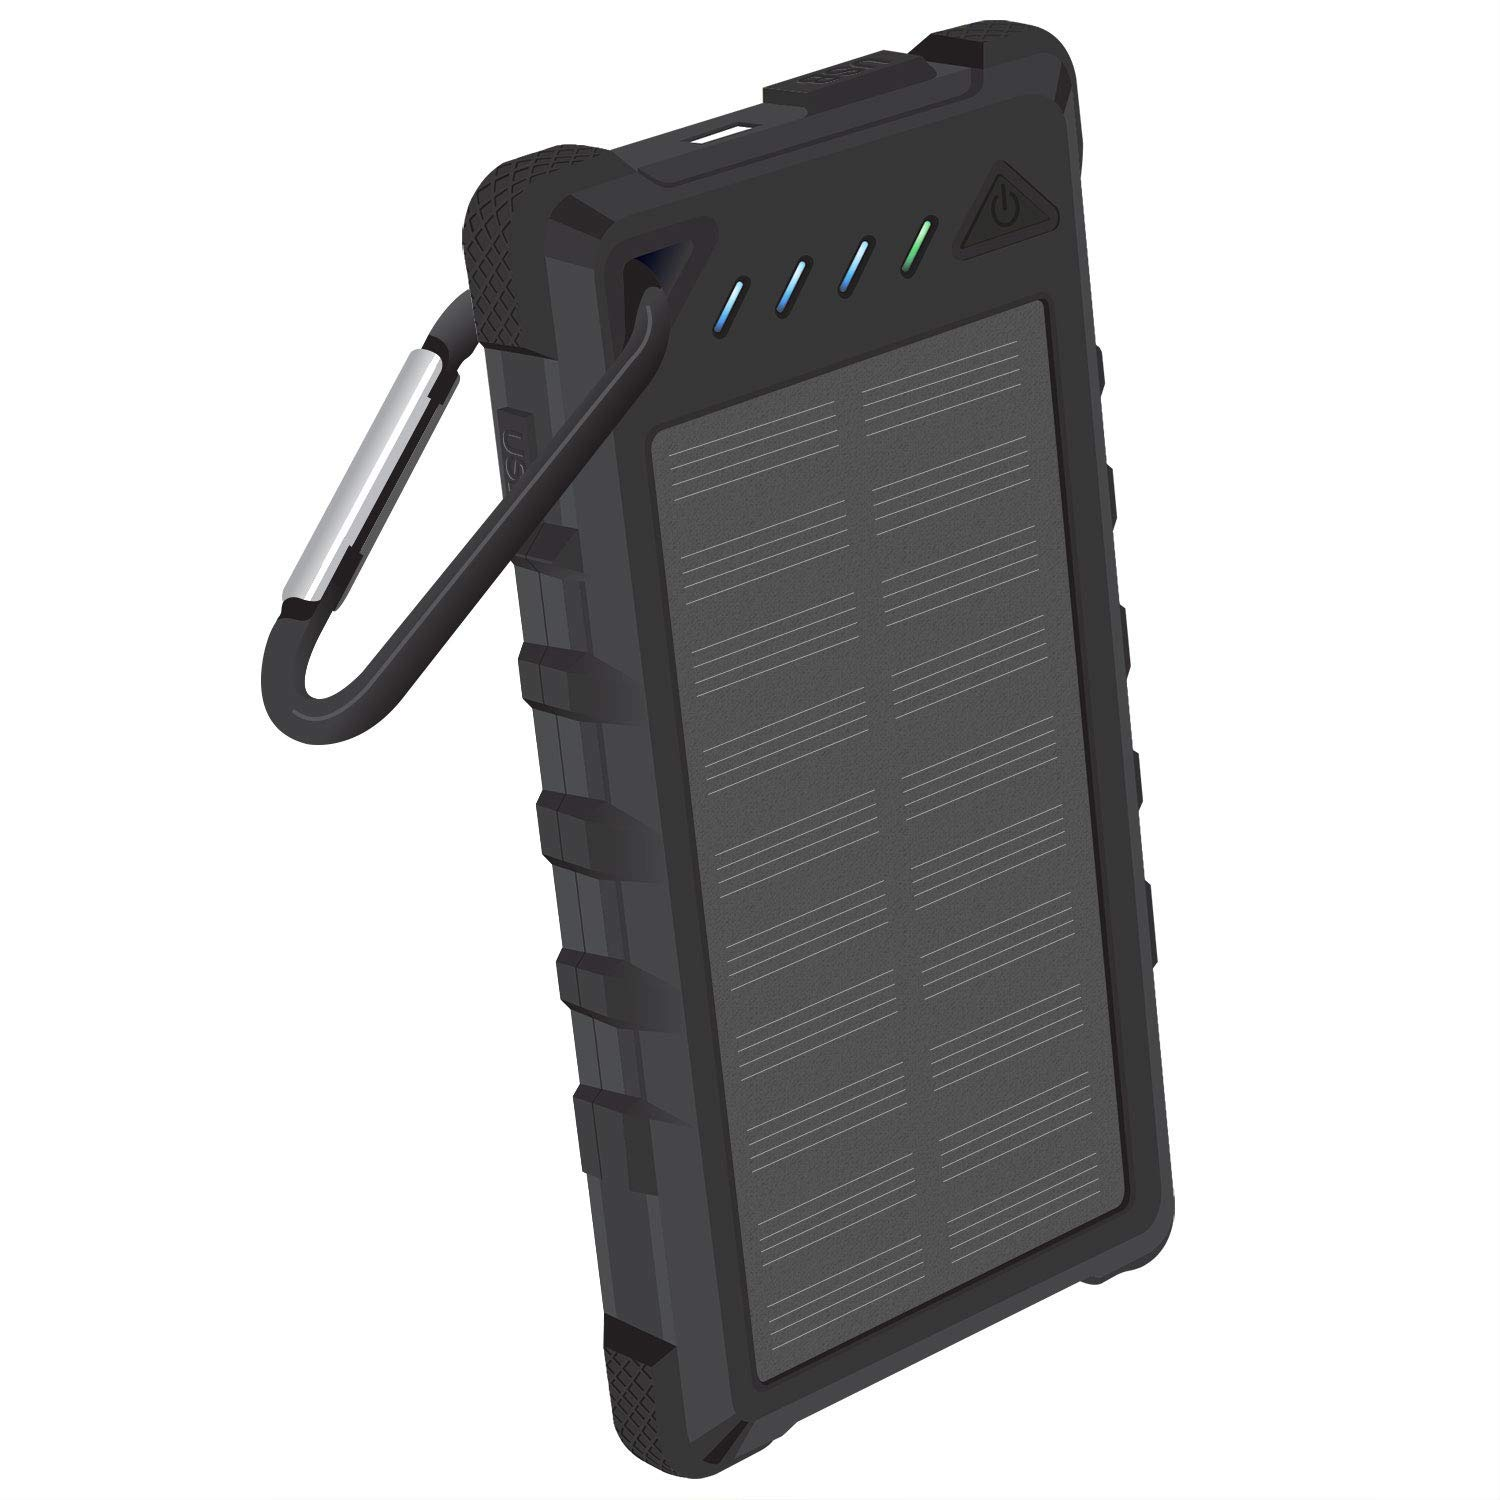 8,000mAh Solar Power Bank Built in Status Display Dual USB Ports Shock Wather Proof Black Compatible iPhone Xr